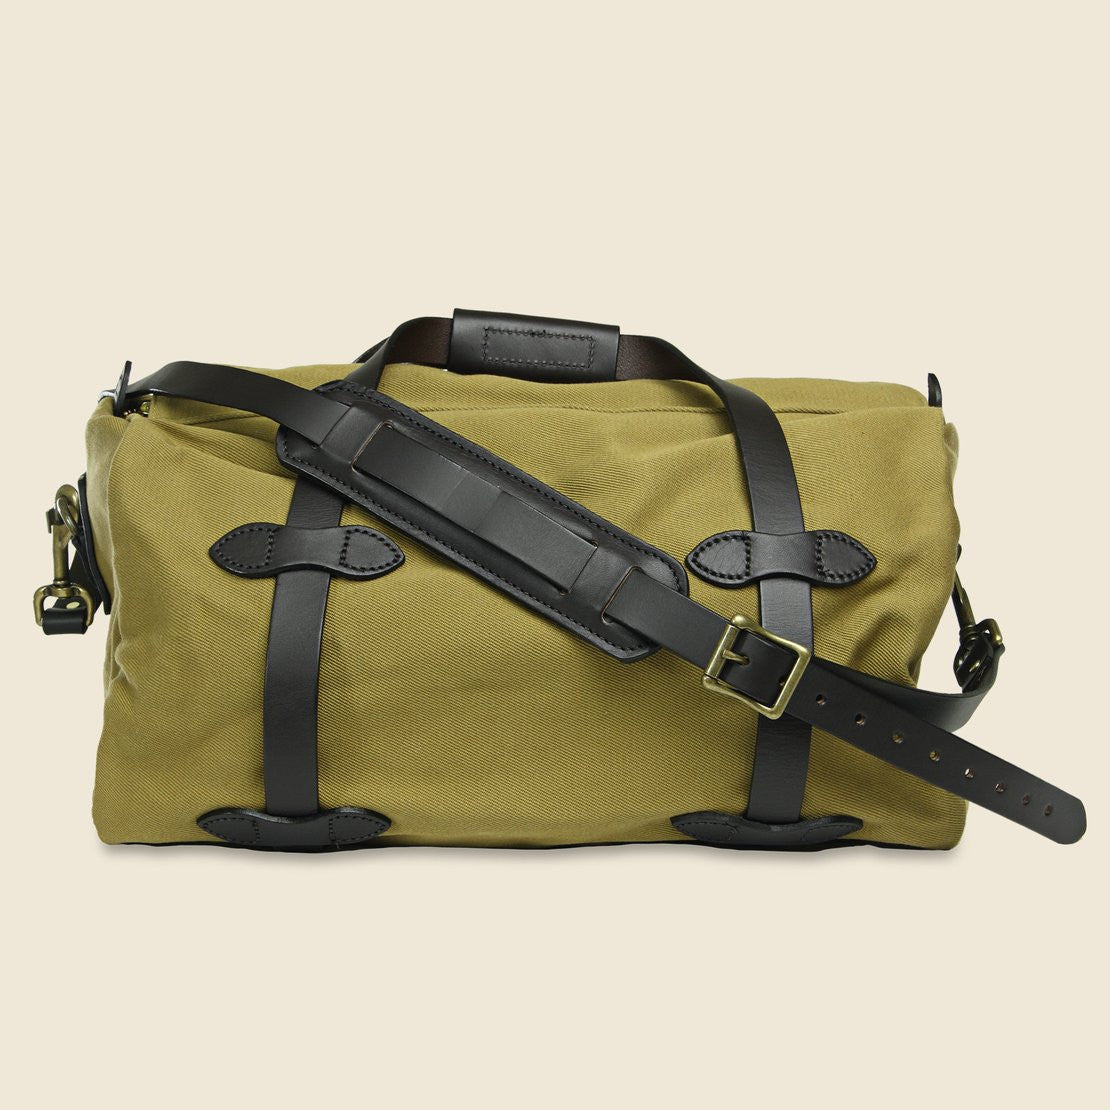 Small Duffle Bag - Tan - Filson - STAG Provisions - Accessories - Bags / Luggage